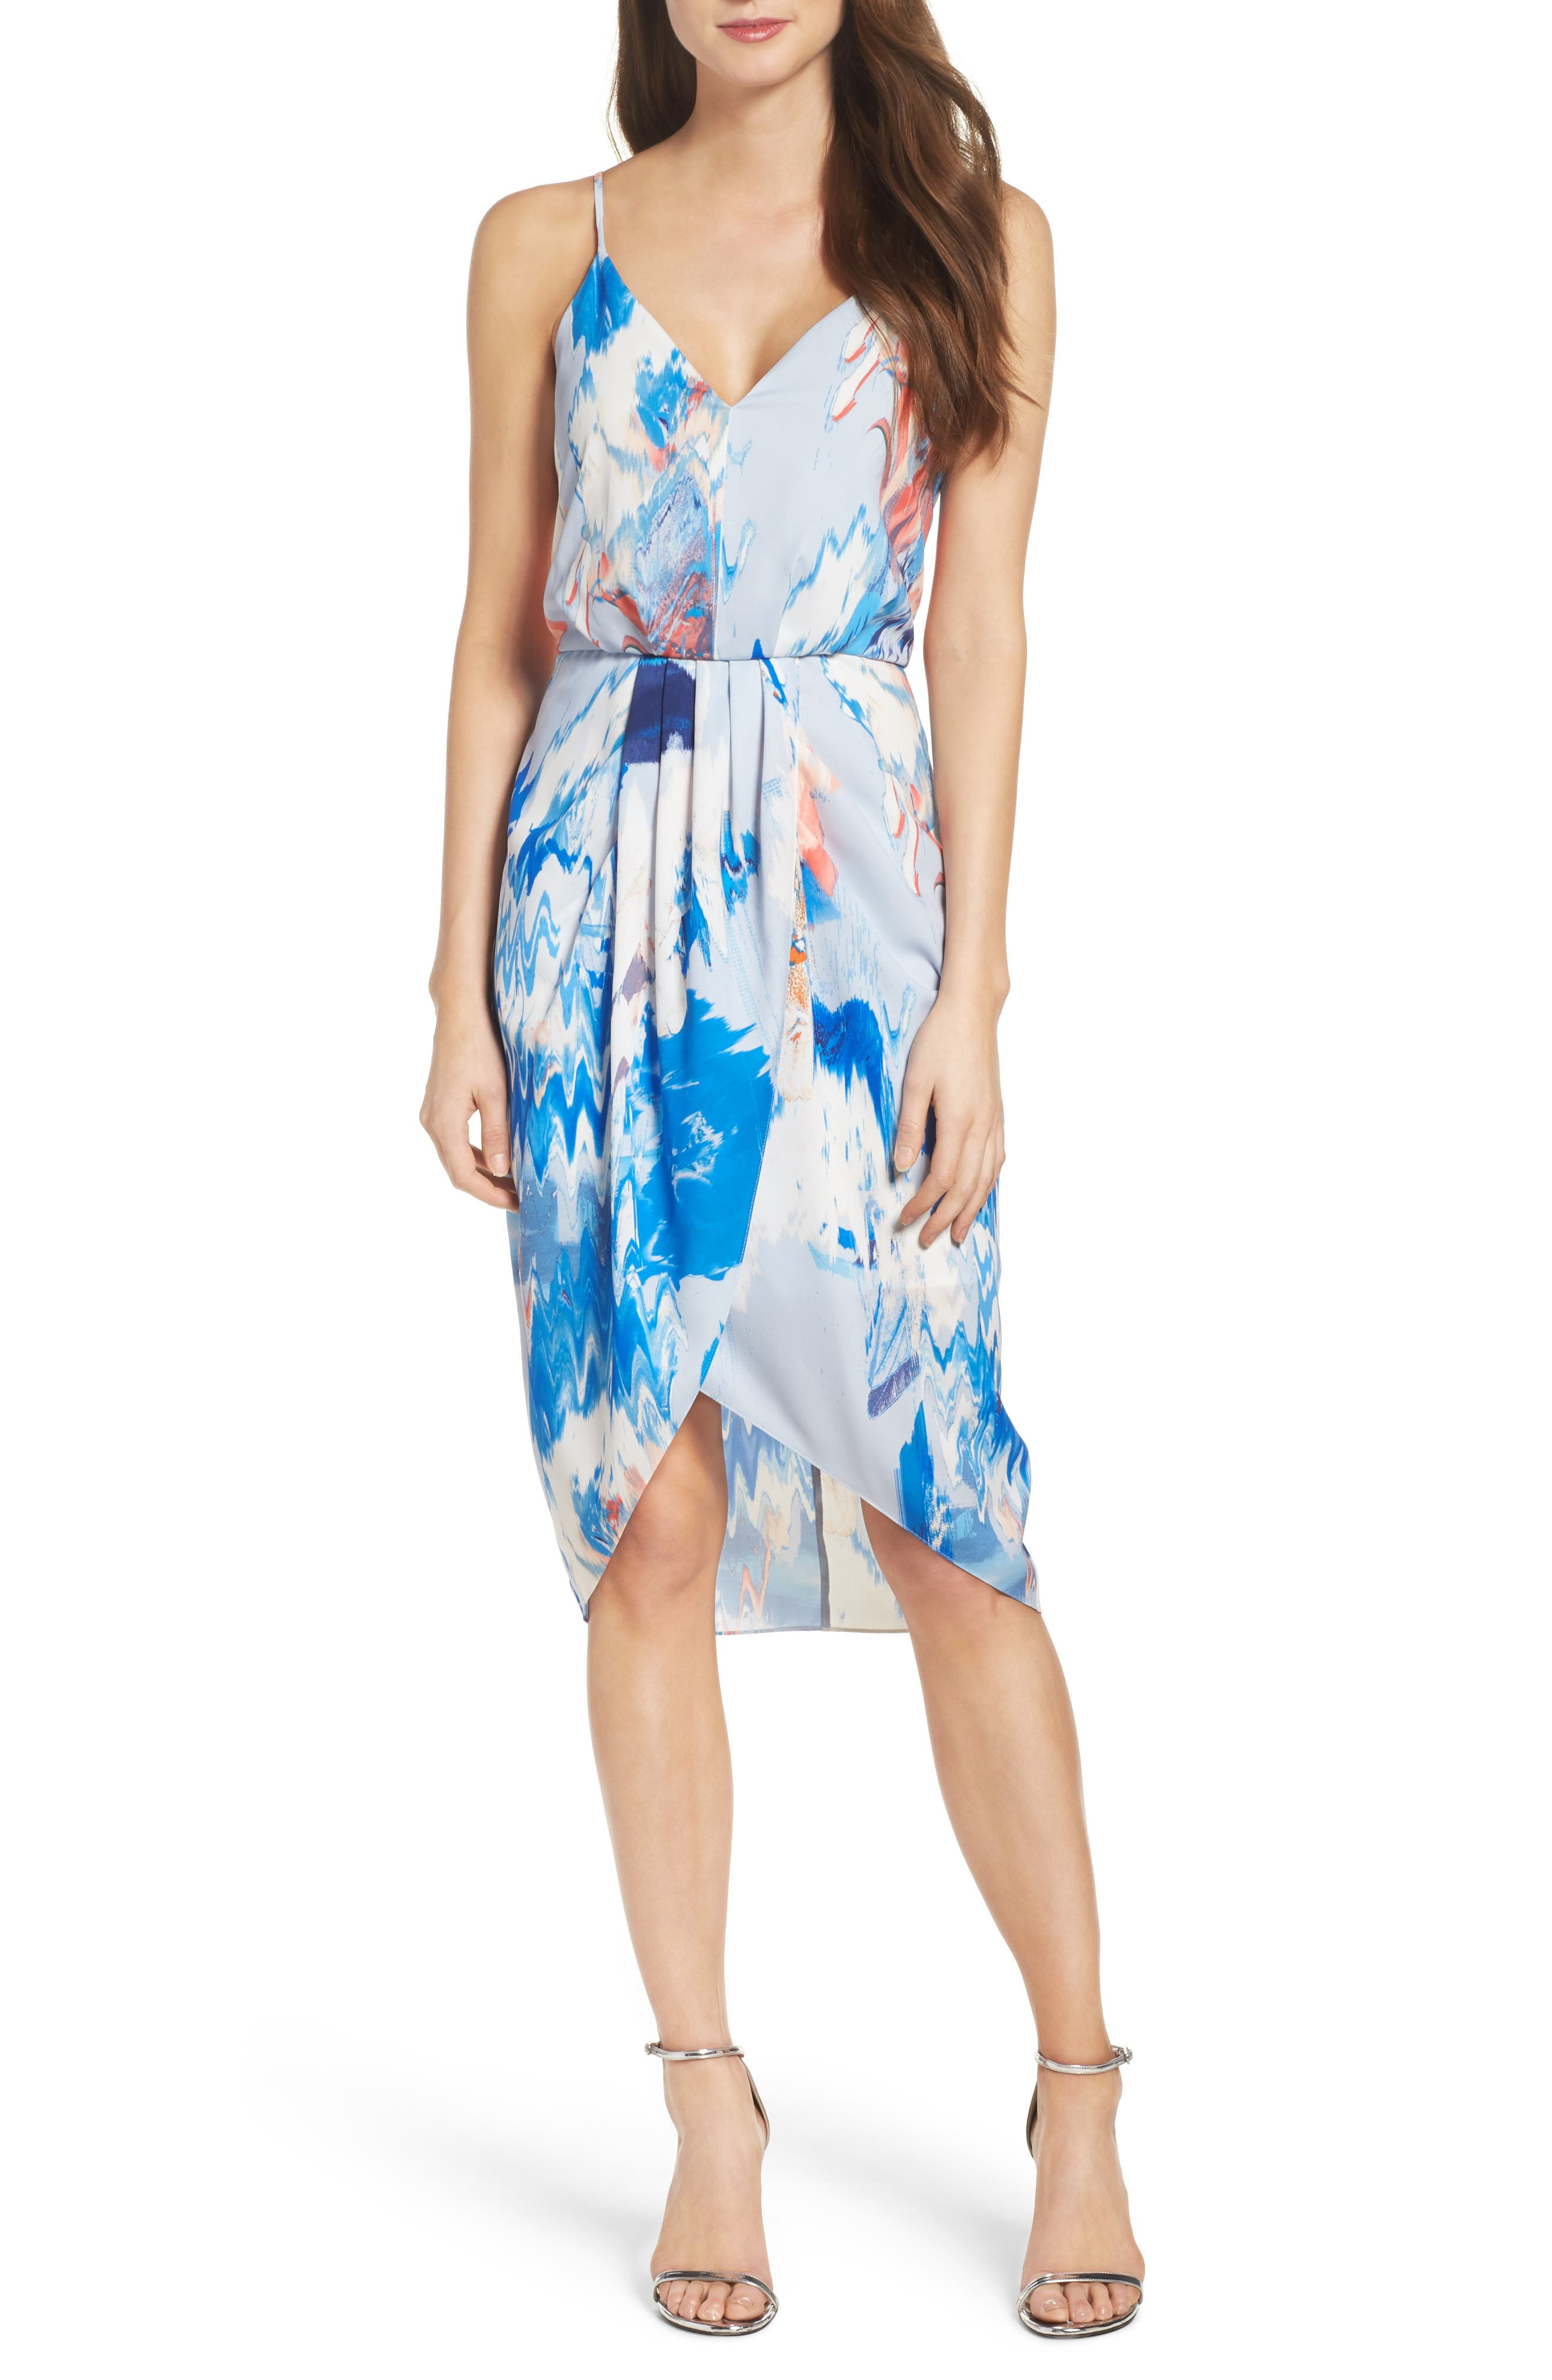 Alternate Image 1 Selected - Chelsea28 Print Faux Wrap Dress